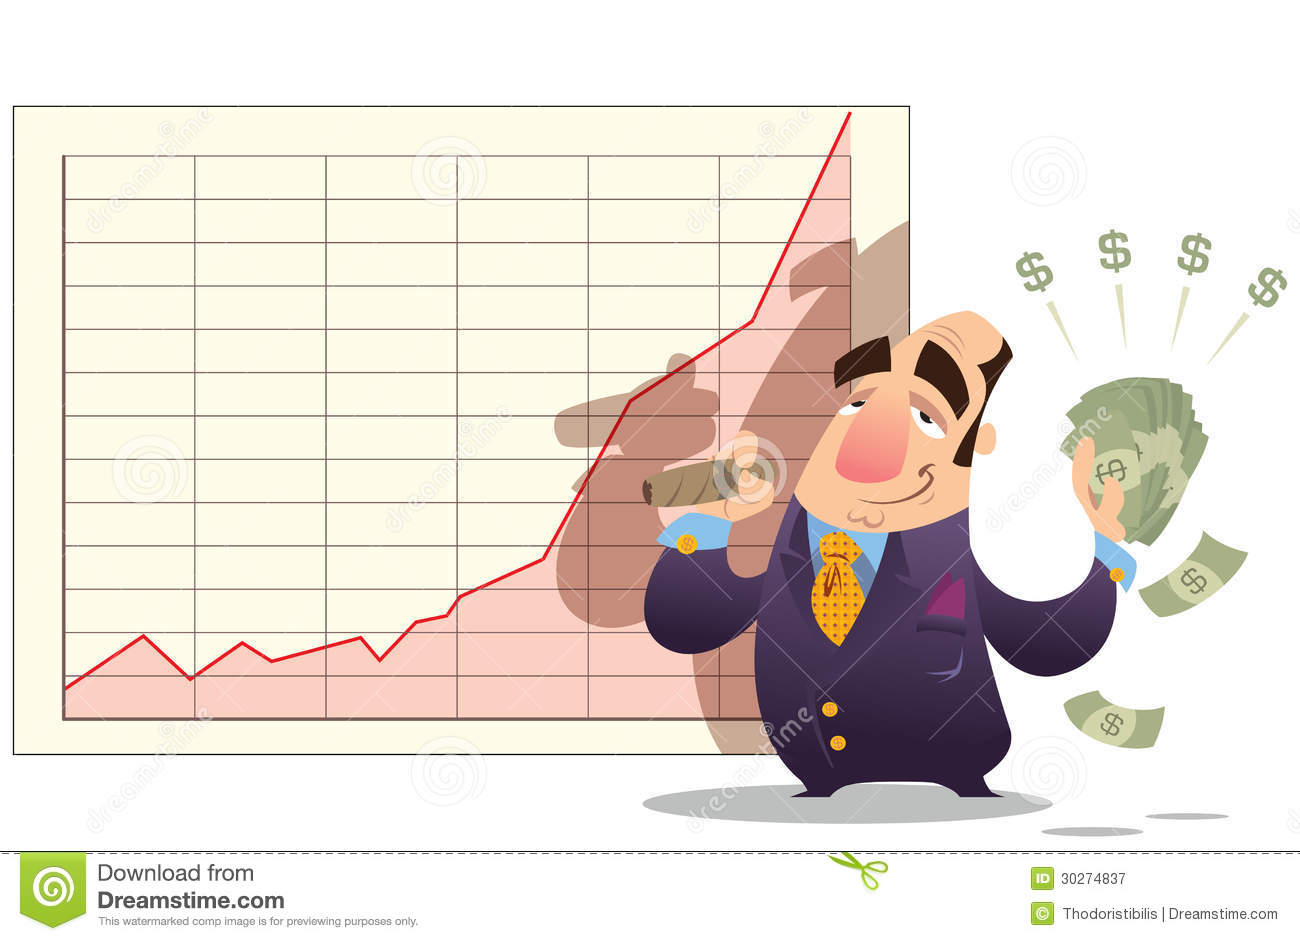 Stock Markets Up Man Winning Money As Stock Market Goes Up Royalty Free